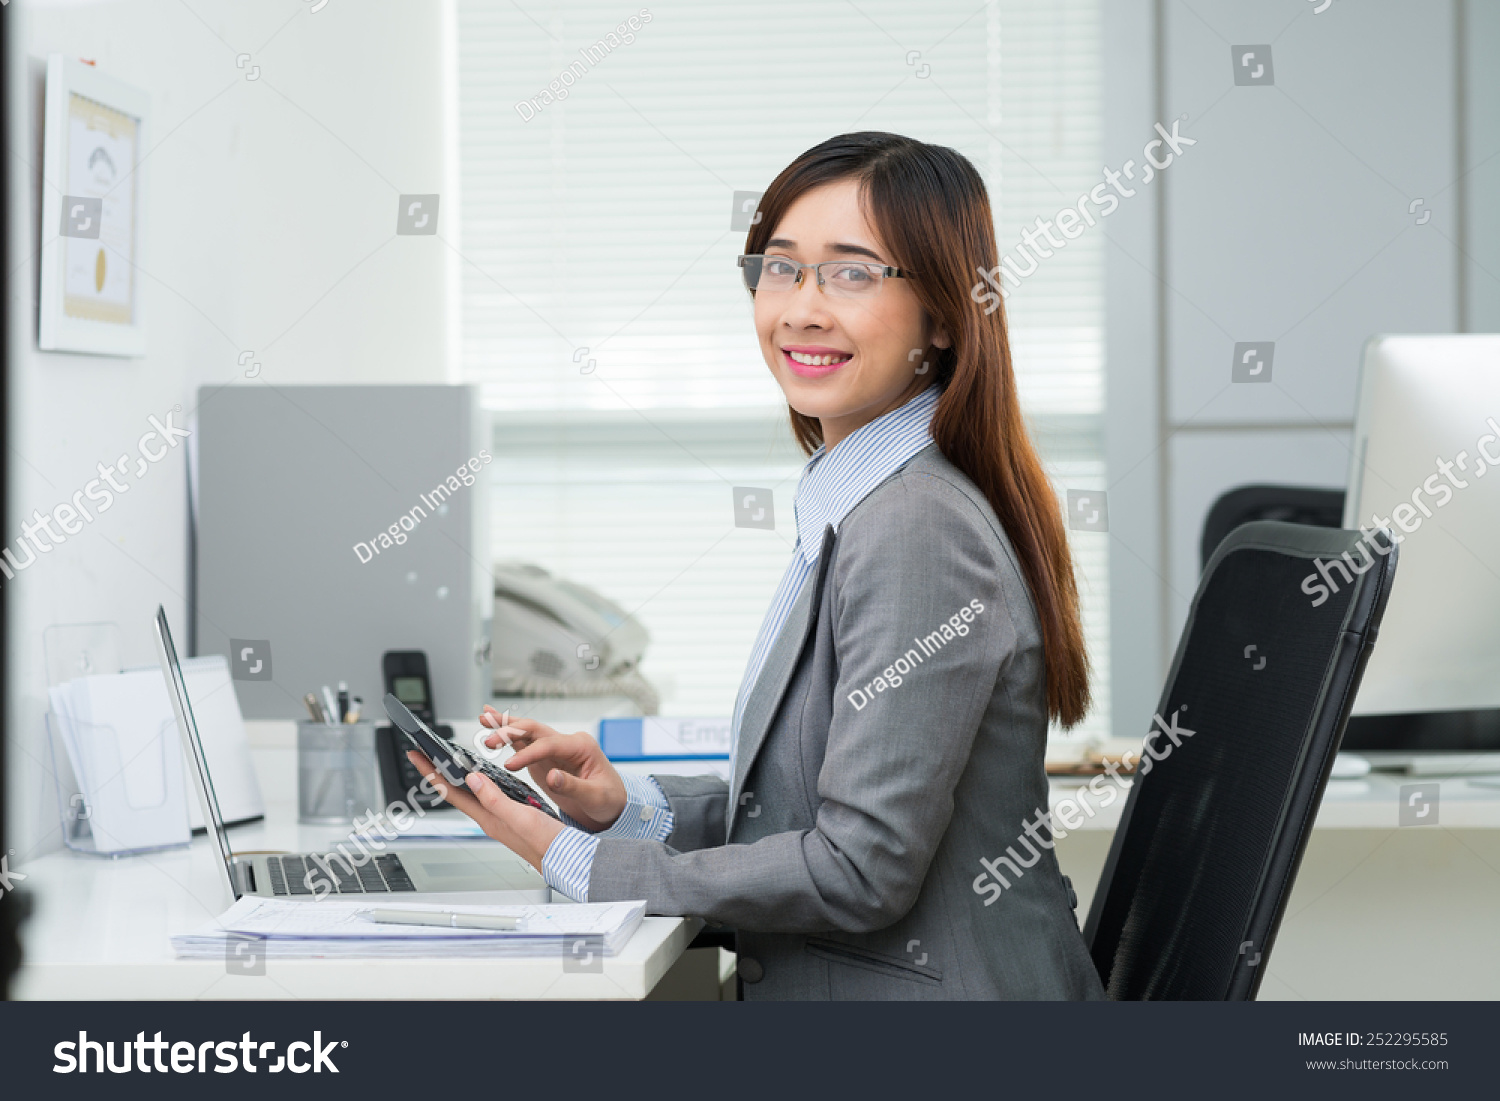 Portrait Of Vietnamese Female Accountant Working In The Office